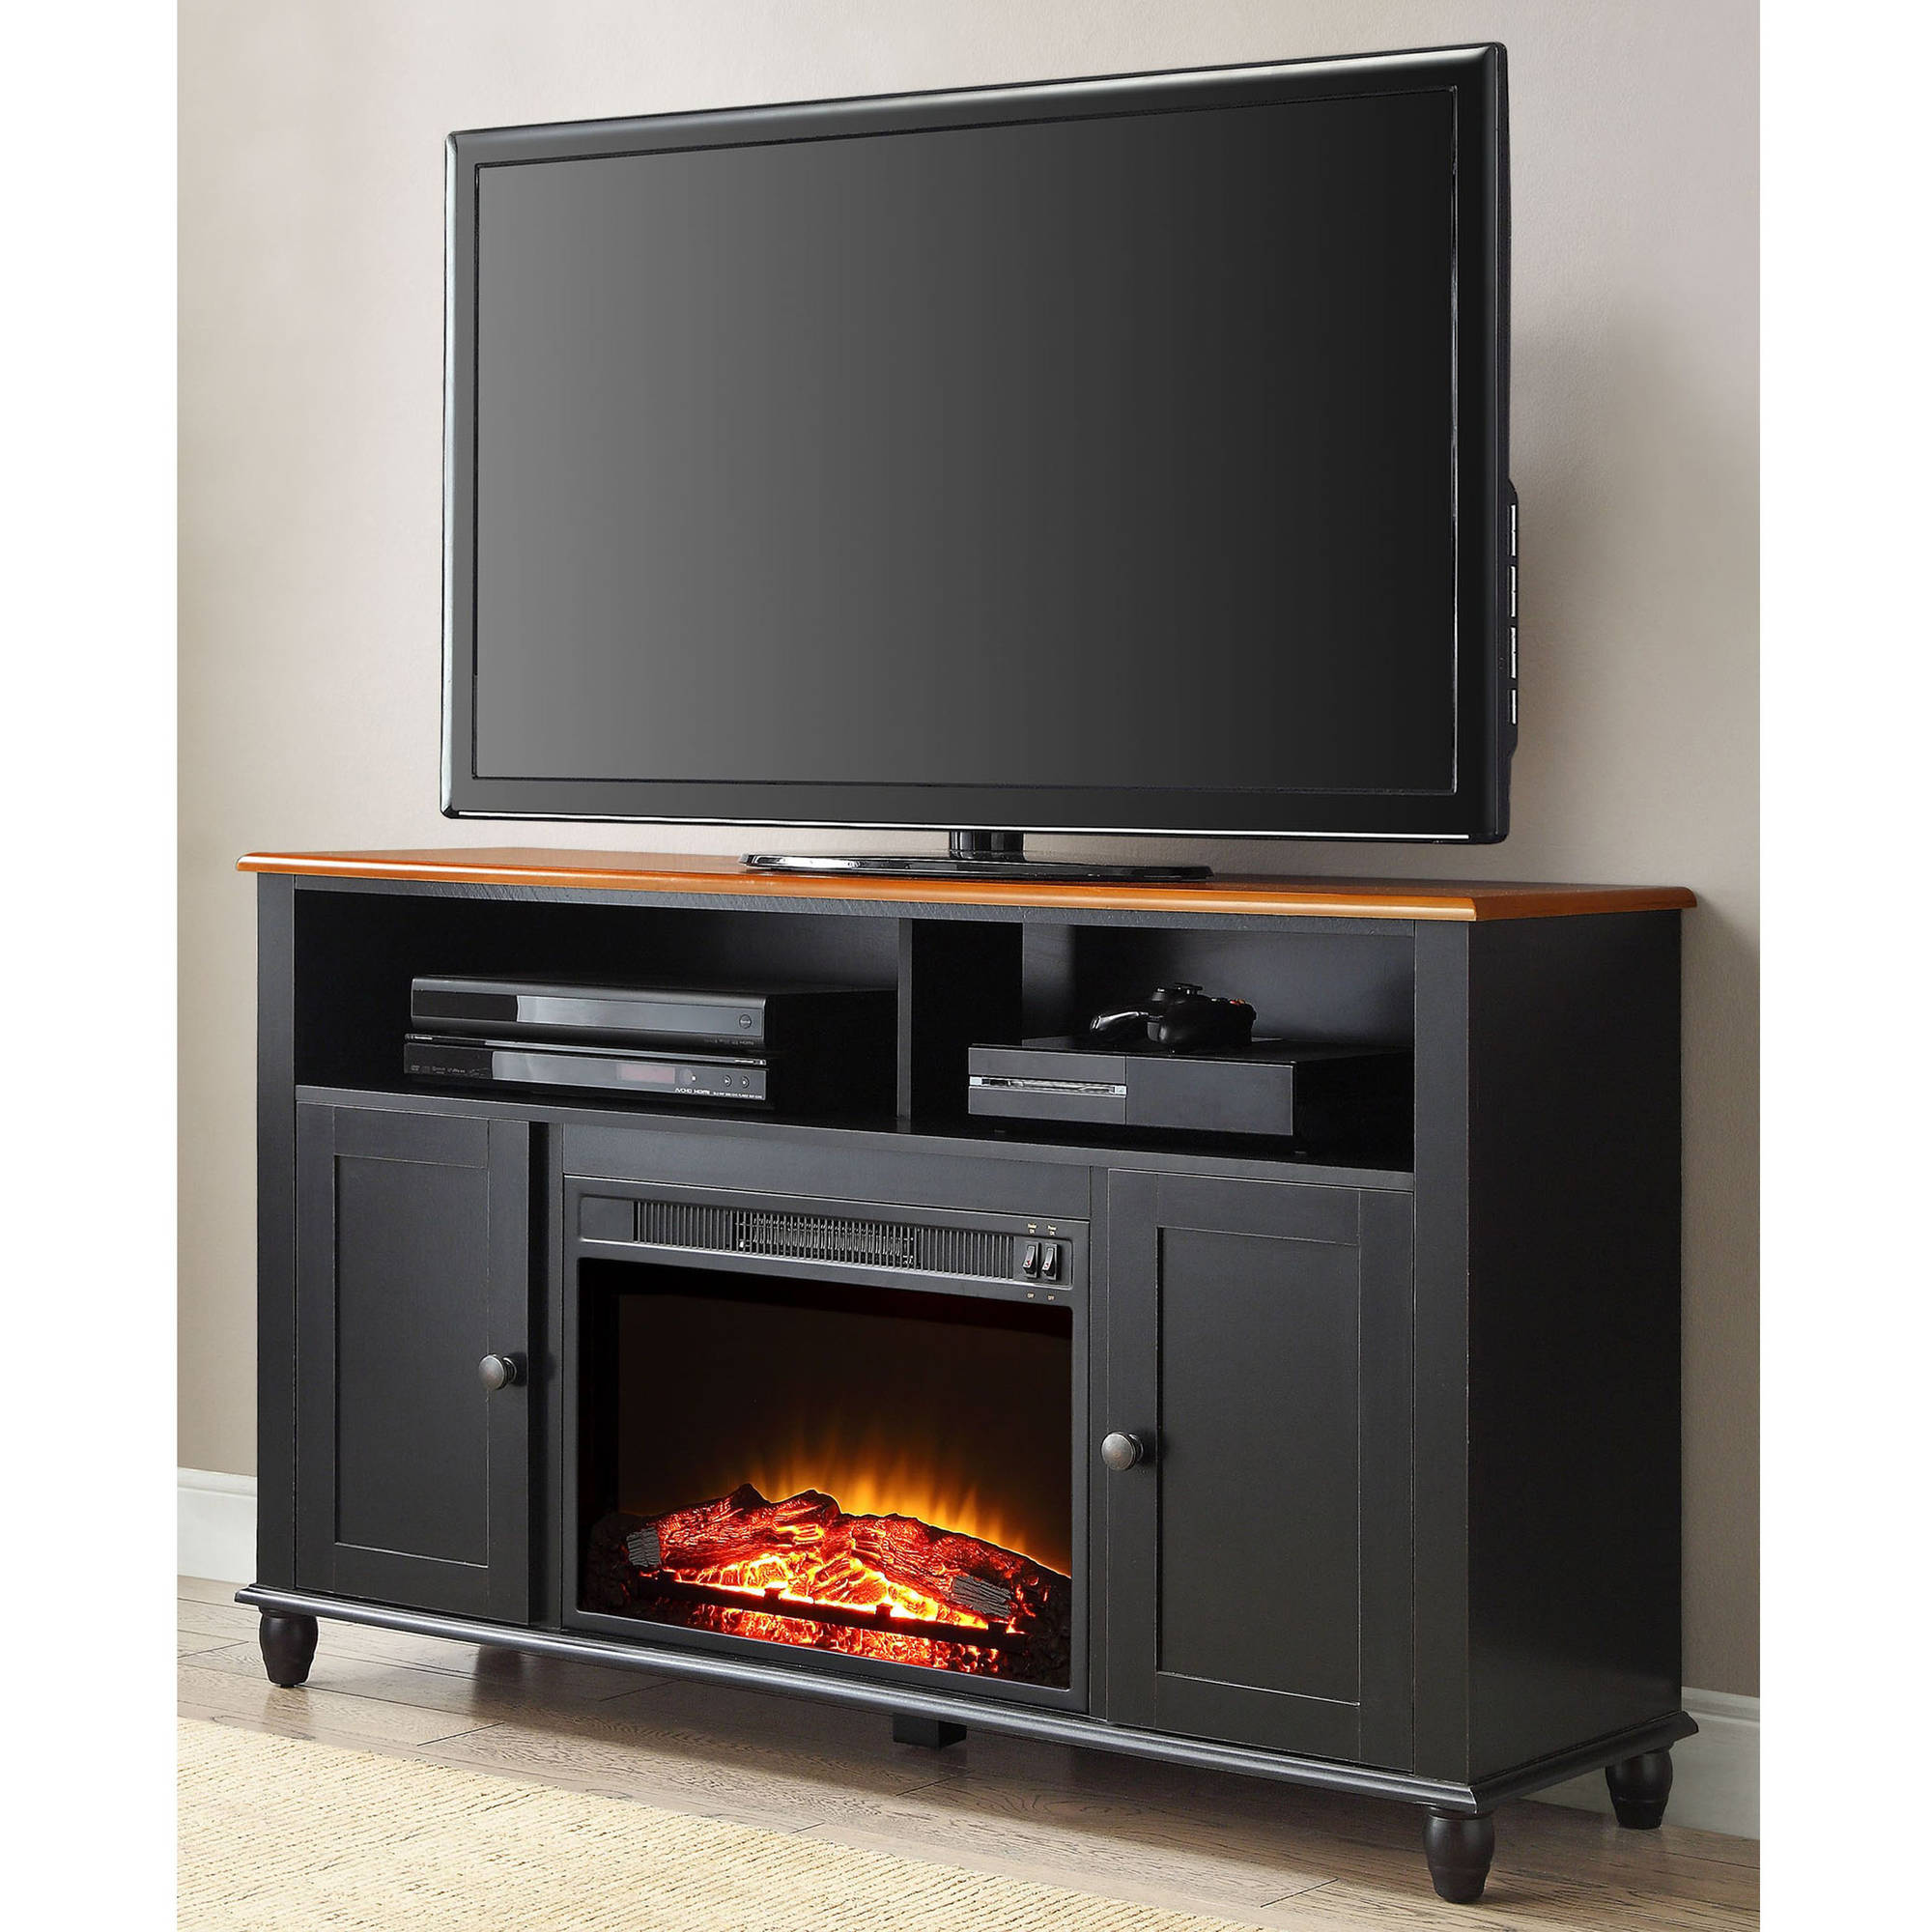 Better Homes and Gardens Autumn Lane Media Fireplace for TVs up to 60""